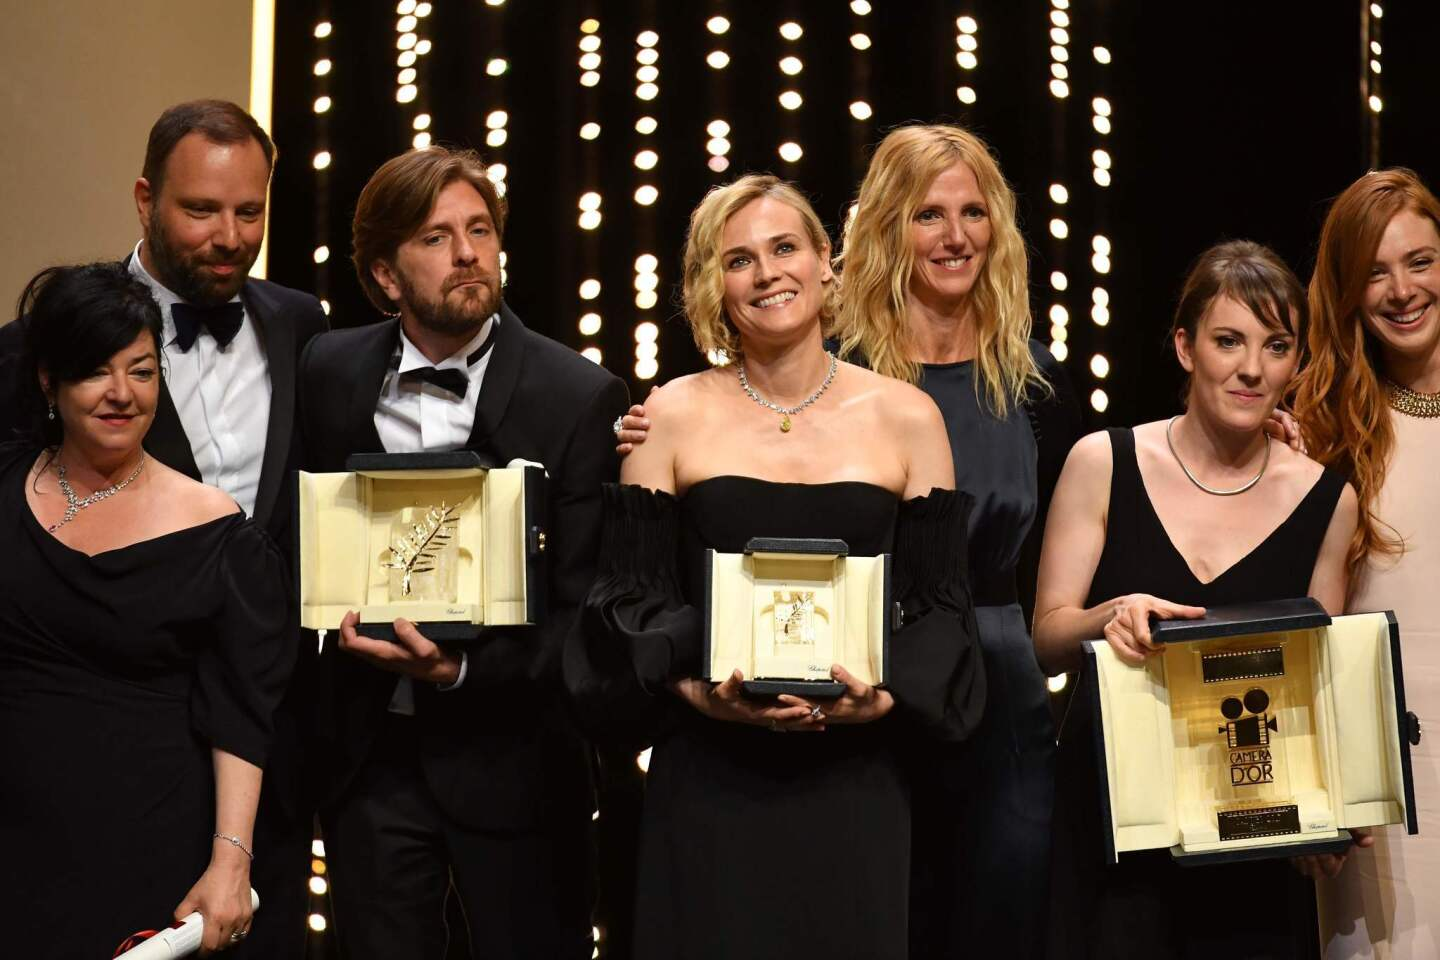 Best screenplay co-laureates directors Lynne Ramsay and director Yorgos Lanthimos, Palme d'Or laureate director Ruben Ostlund, best actress prize laureate Diane Kruger, actress and President of the Camera d'Or jury Sandrine Kiberlain, Camera d'Or laureate director Leonor Serraille and actress Laetiti Dosch pose on stage at the end of the closing ceremony.